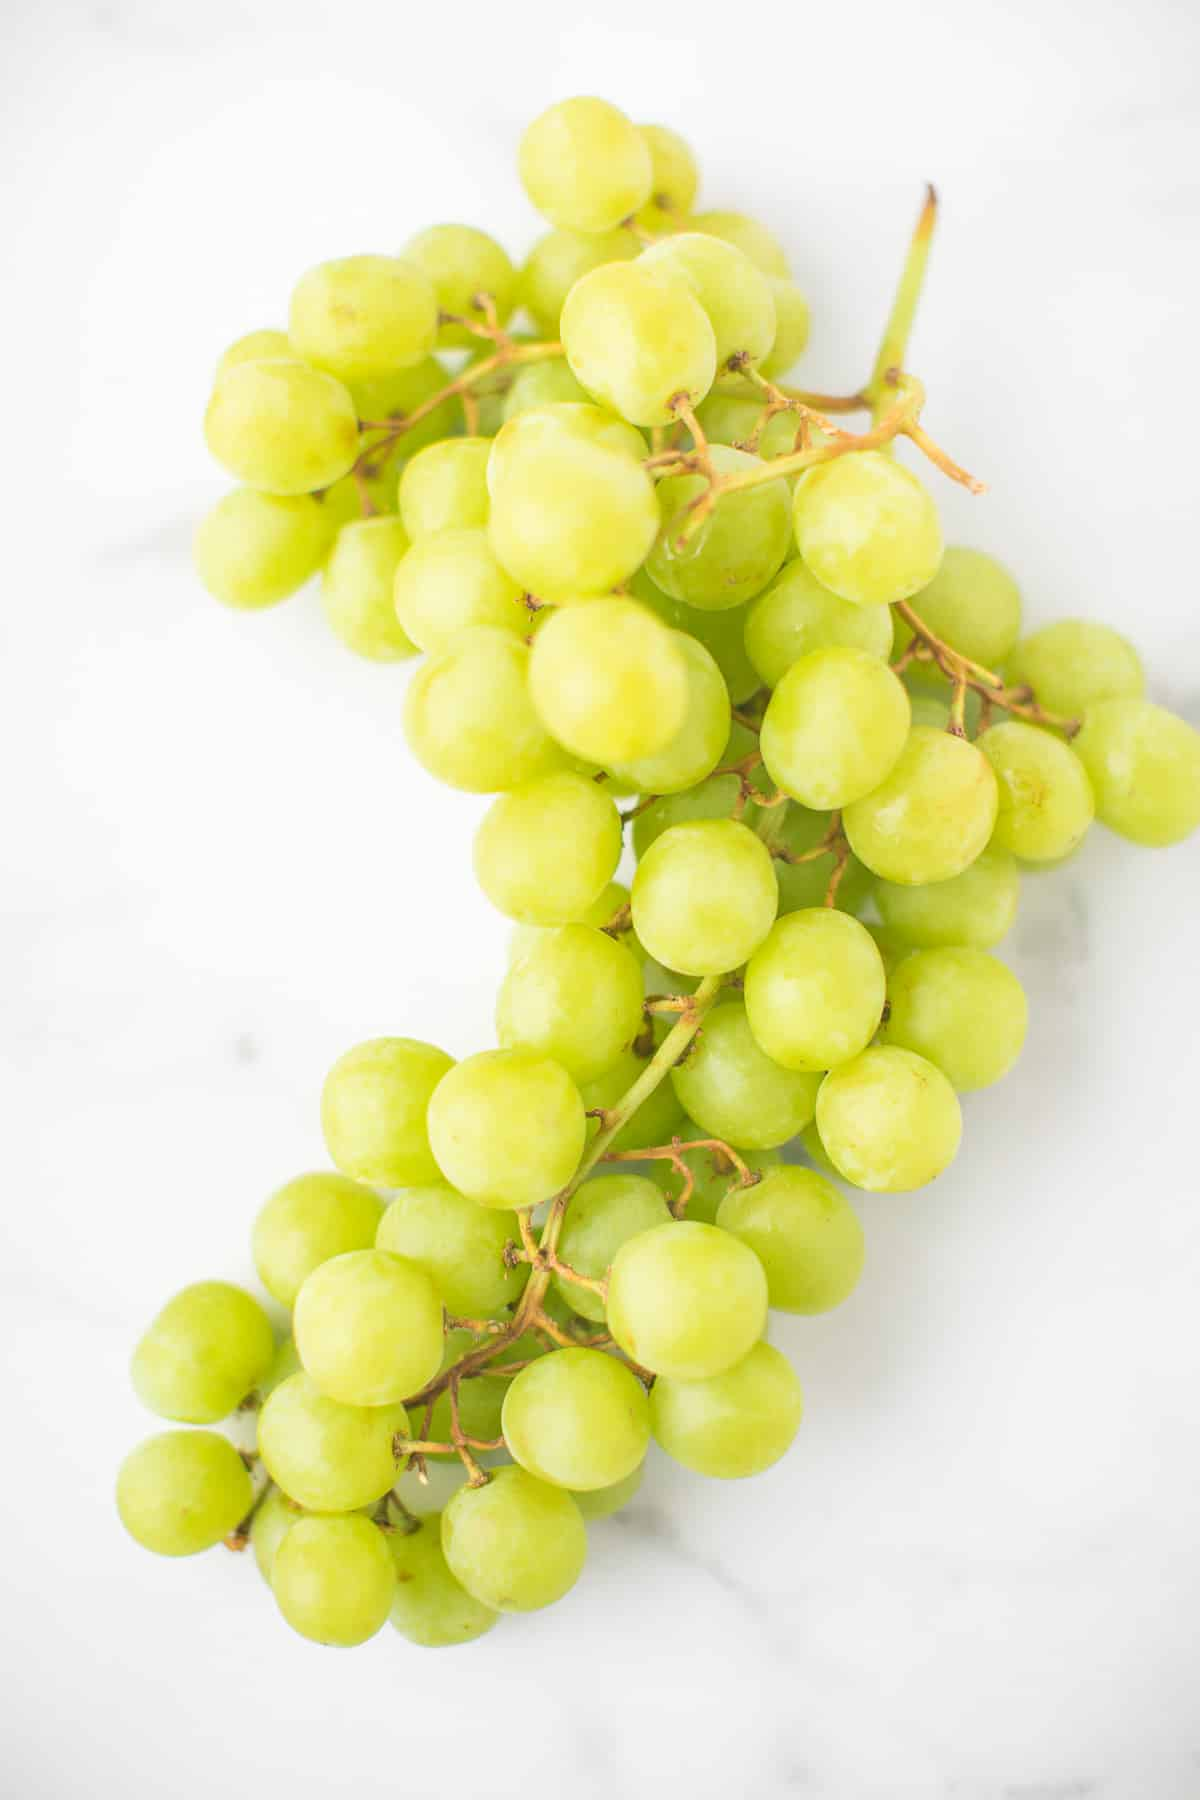 bunch of green grapes on a marble countertop